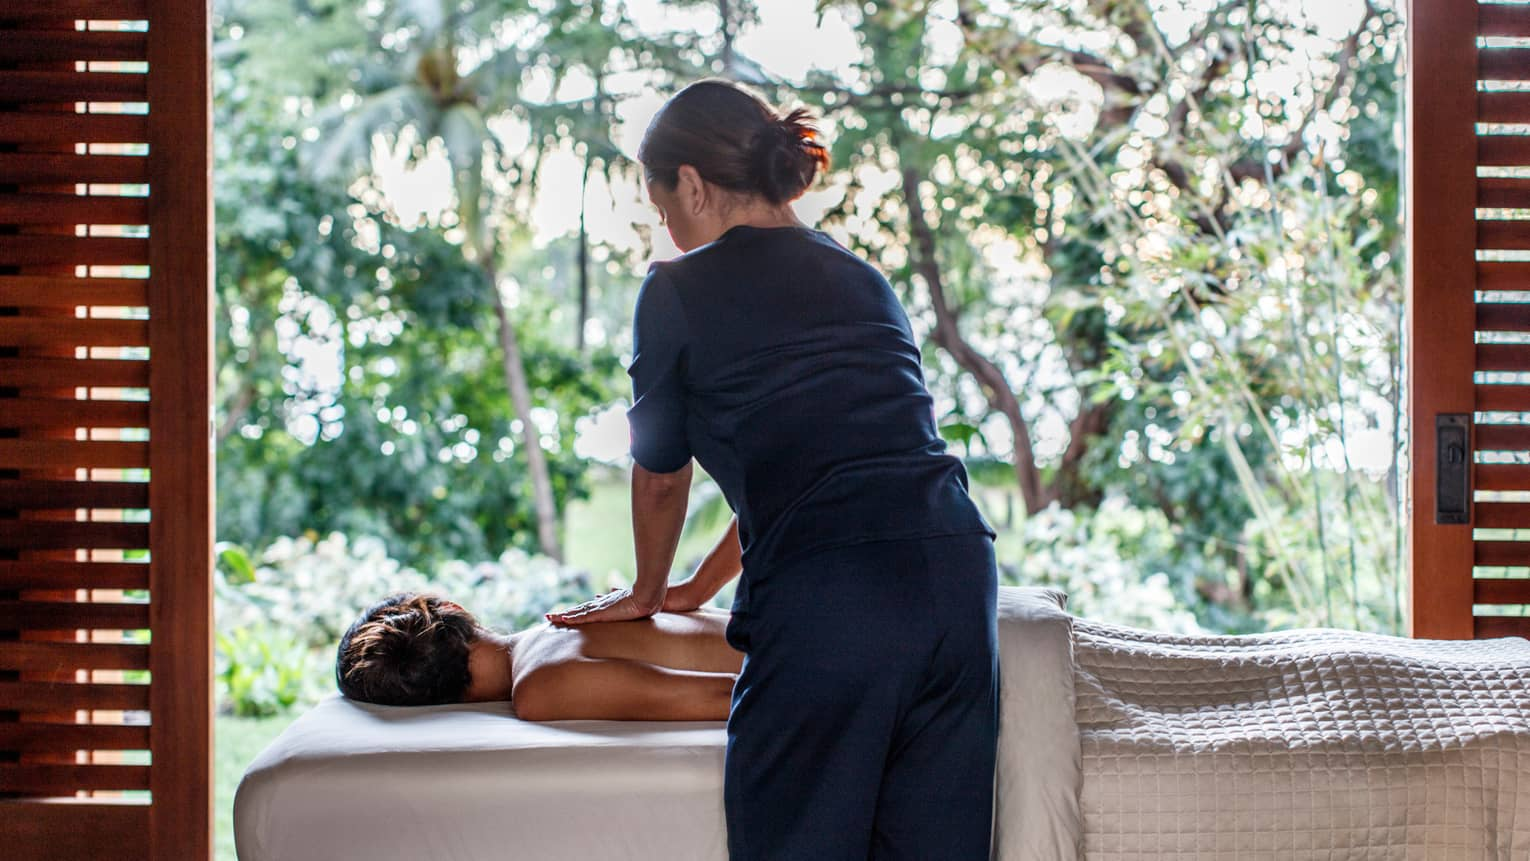 Spa staff massages woman's bare shoulders as she lies under sheet on massage table